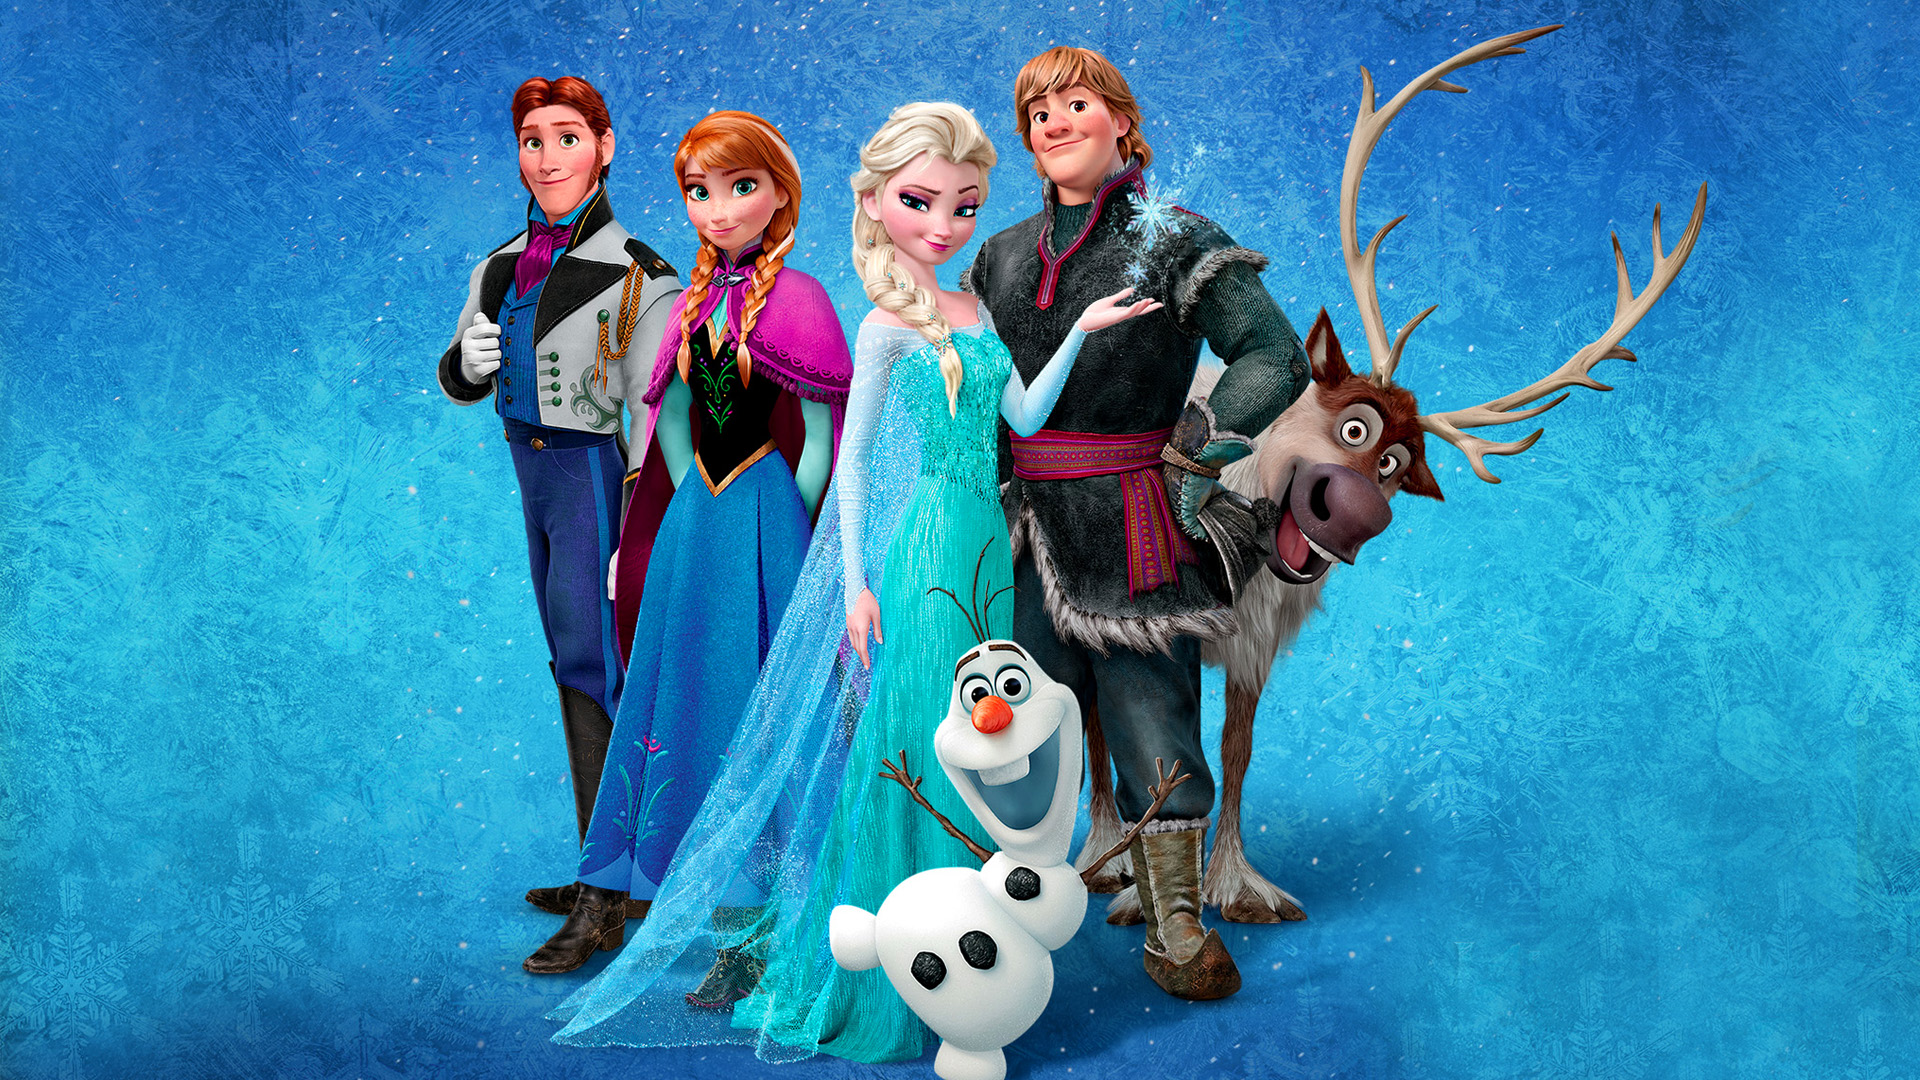 Frozen Animated Movie Choice Wallpaper 1920x1080